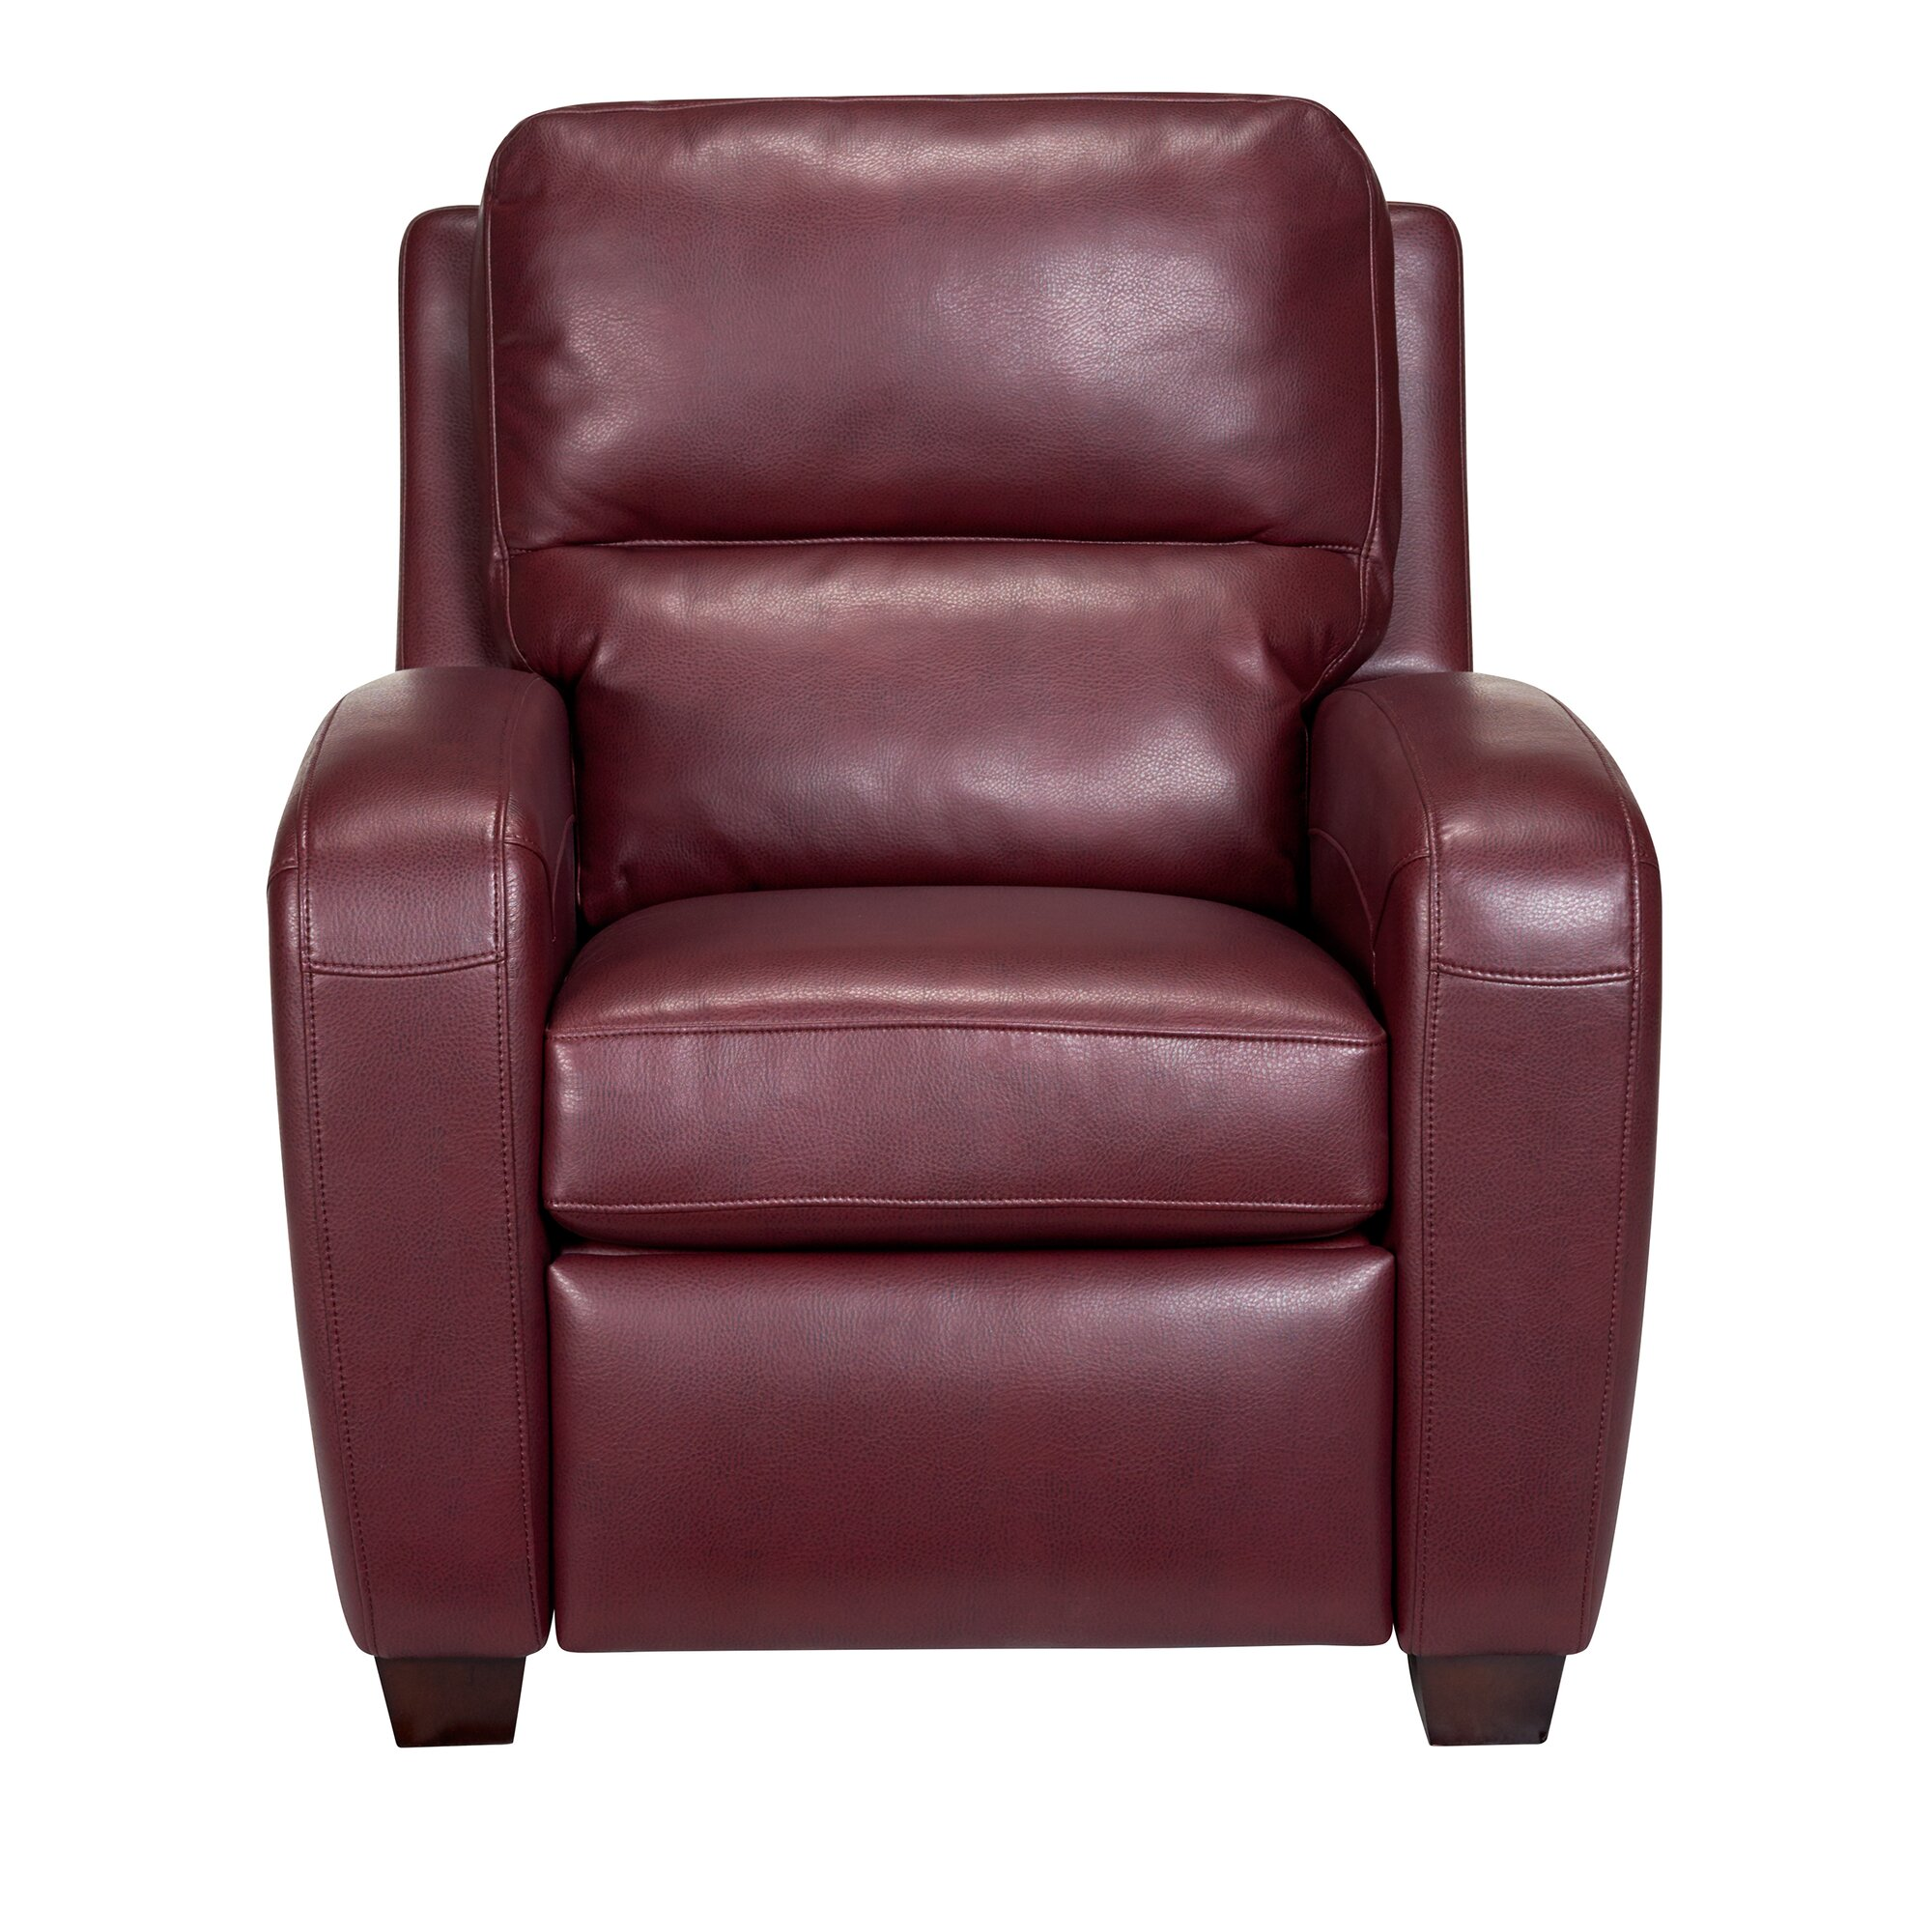 small recliner chairs for rvs harrison wall hugger recliners  - small apartment size recliners you ll love wayfair